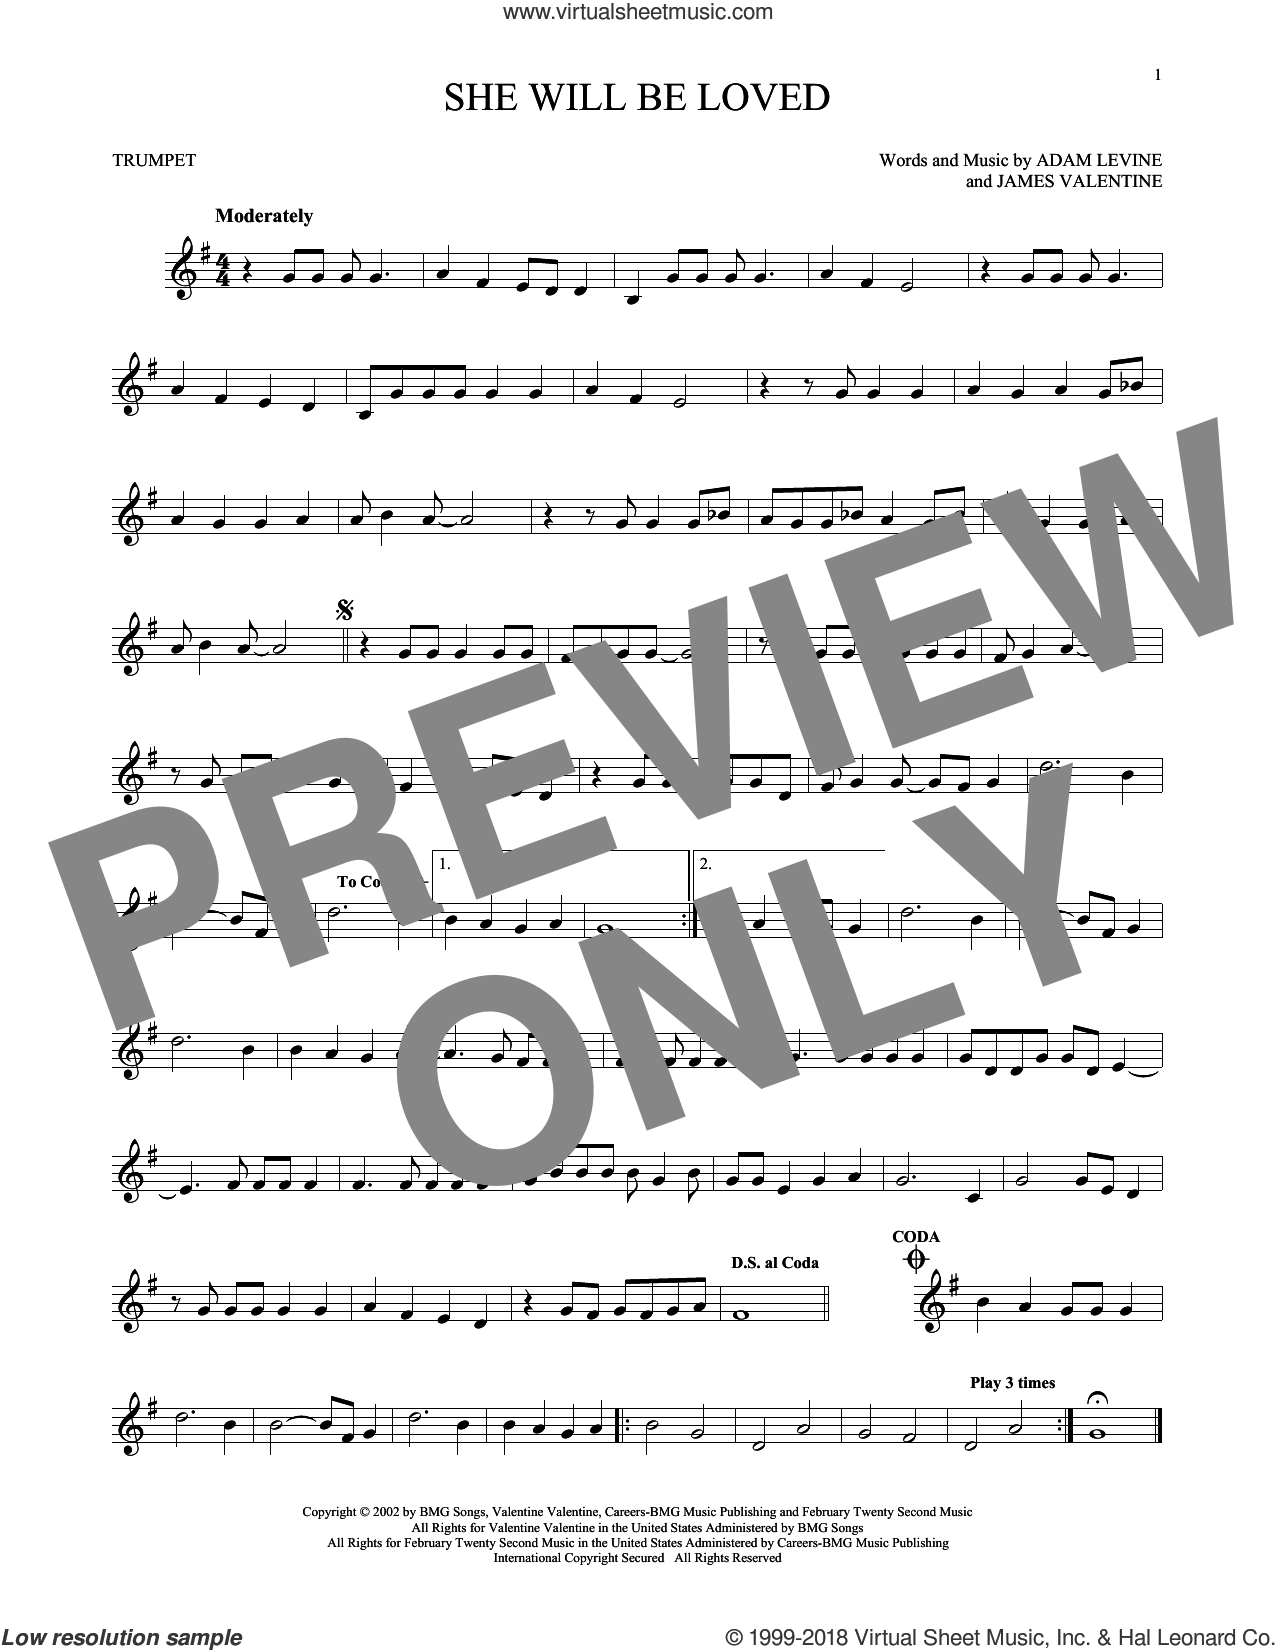 She Will Be Loved sheet music for trumpet solo by Maroon 5, Adam Levine and James Valentine, intermediate skill level